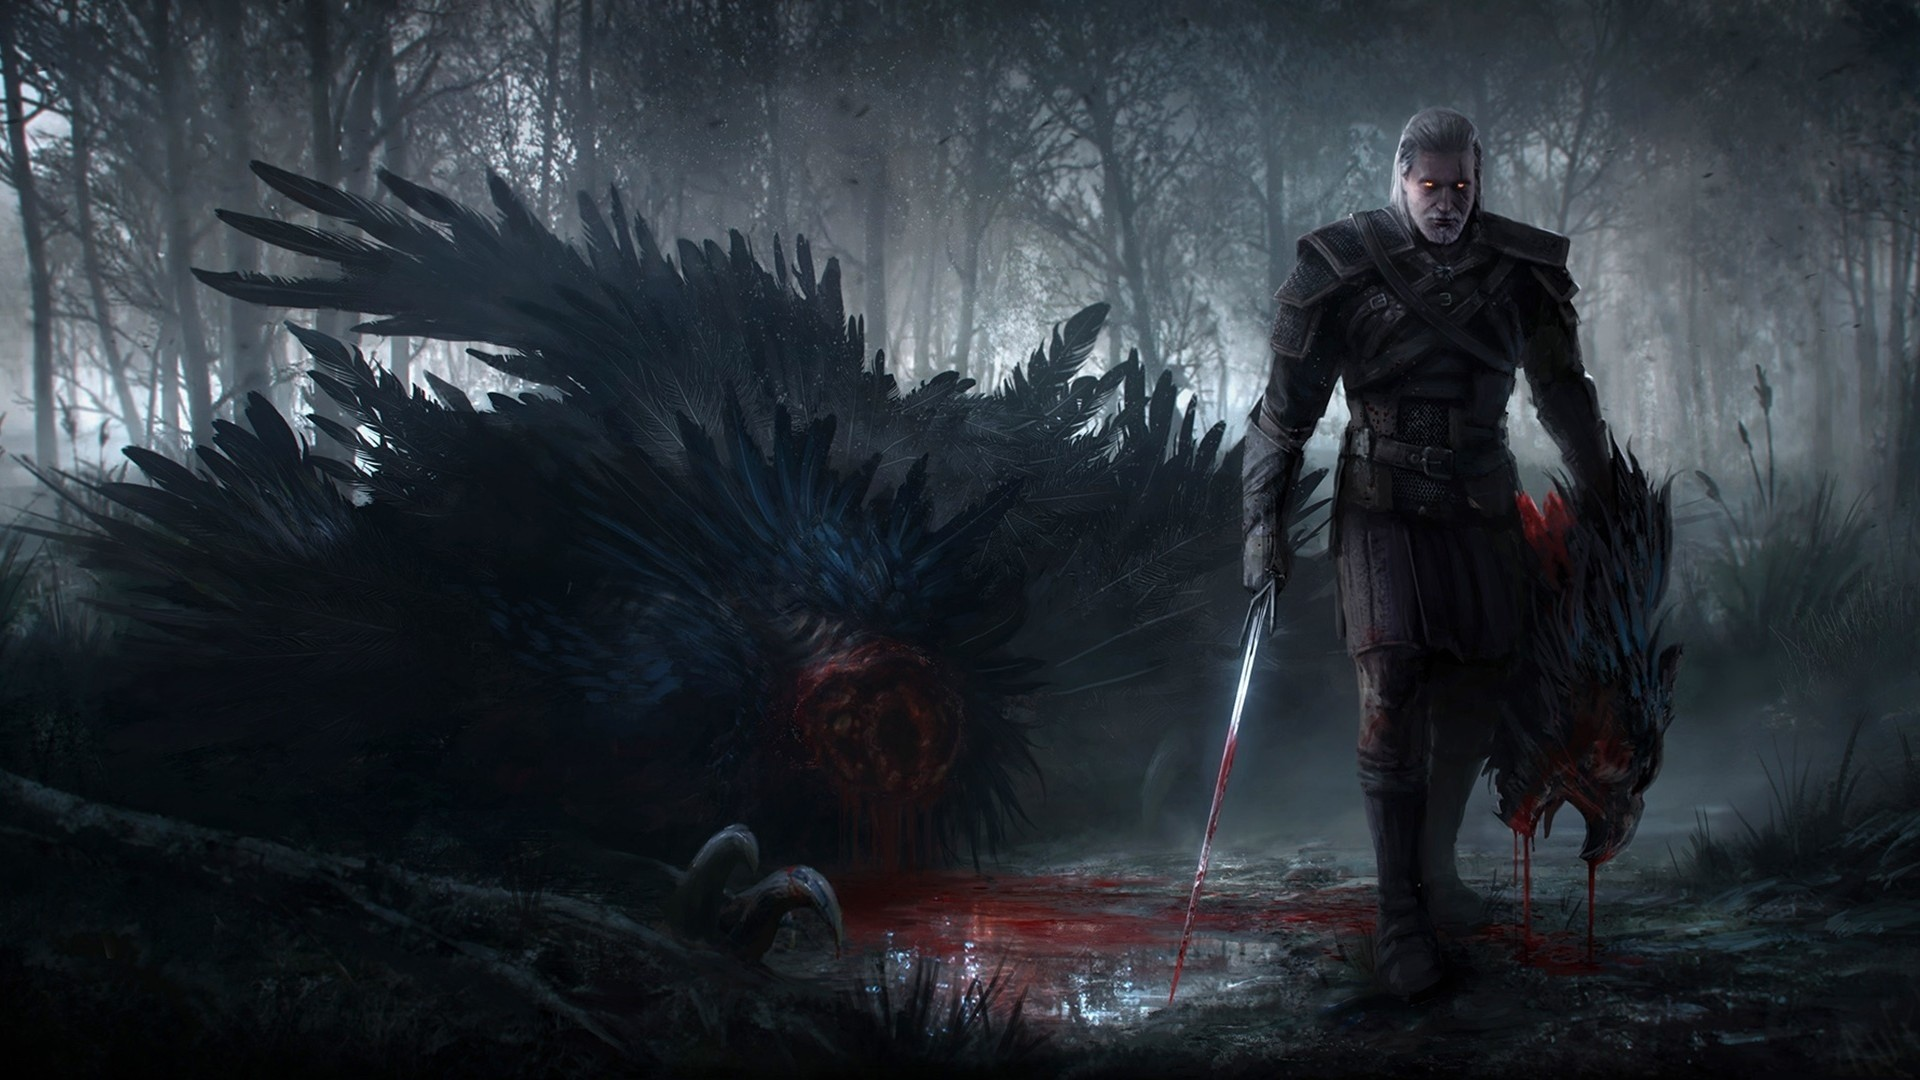 undefined The Witcher 3 Wallpapers (30 Wallpapers) | Adorable Wallpapers